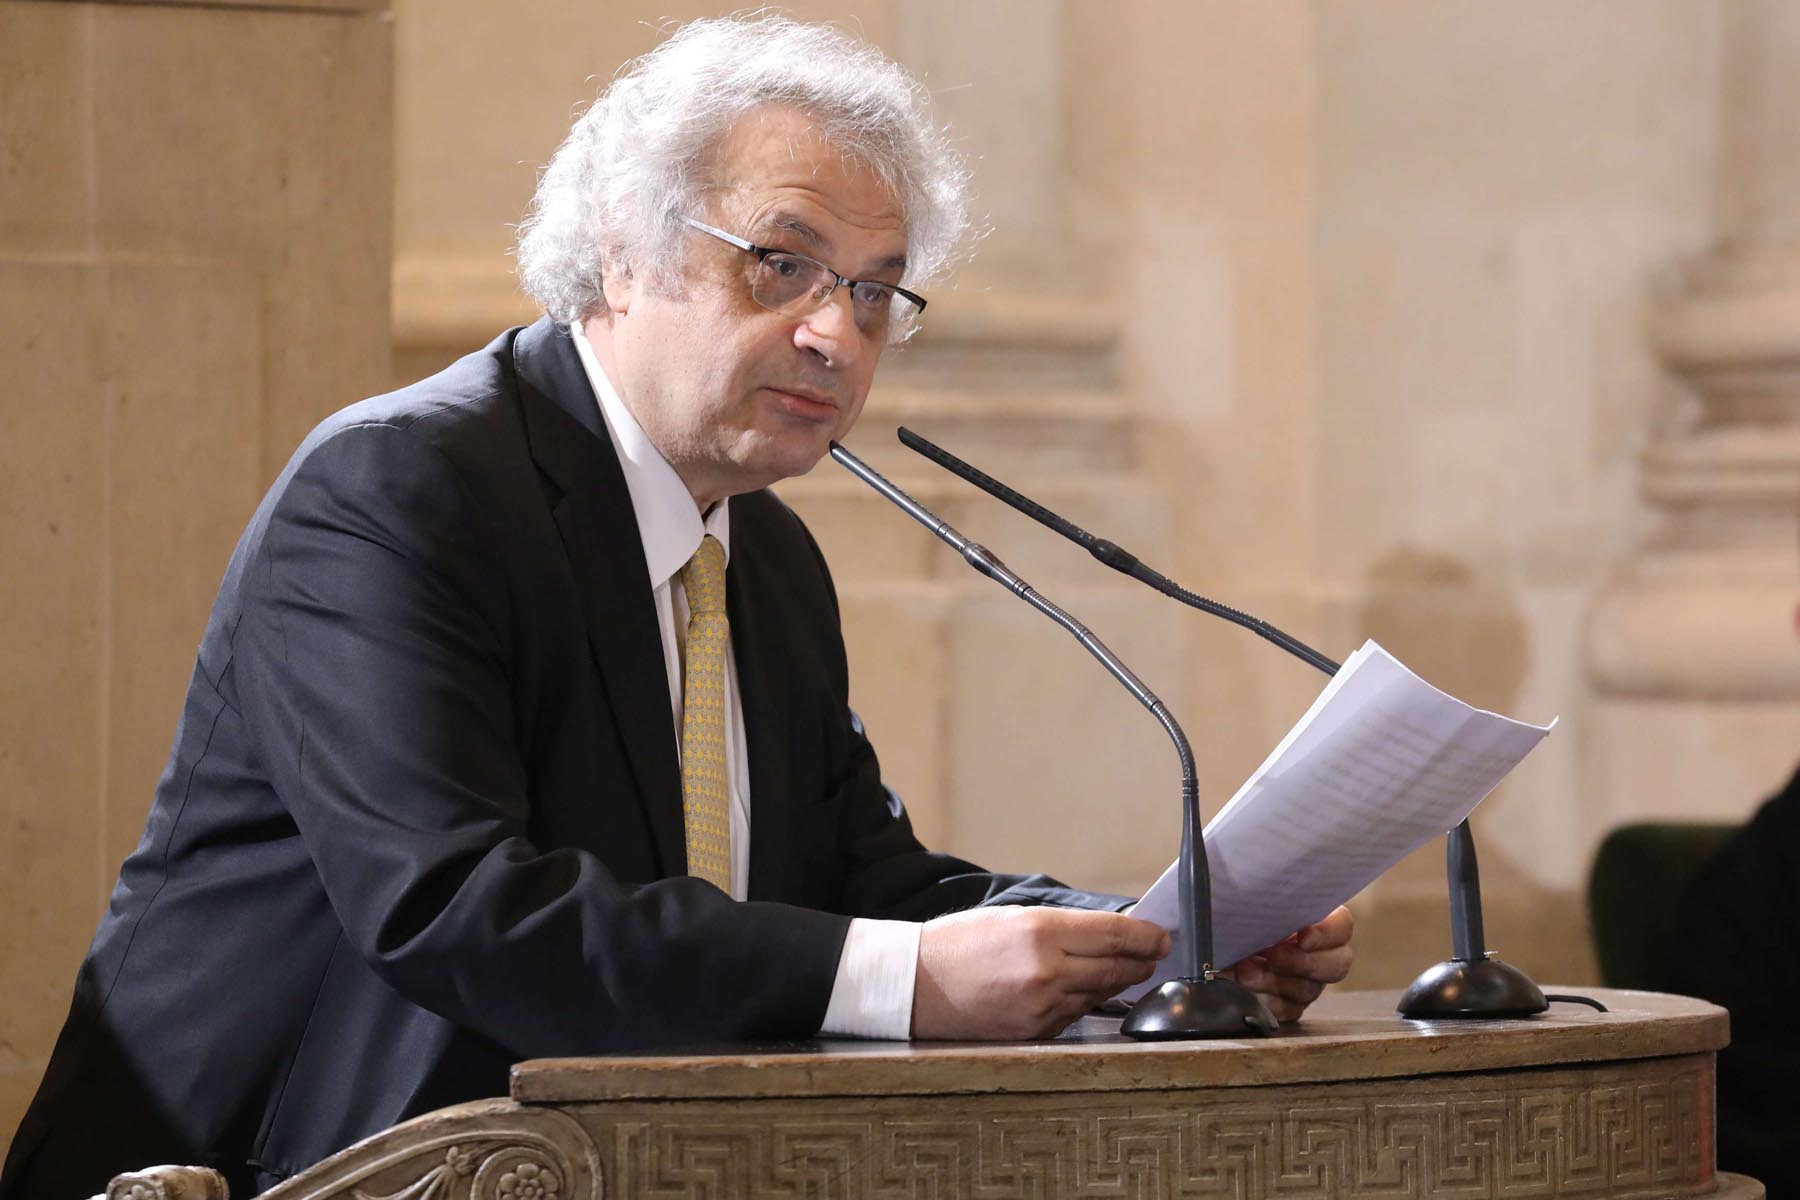 Lebanese-French writer and academician Amin Maalouf speaks during a ceremony at the French Institute in Paris. (Reuters)